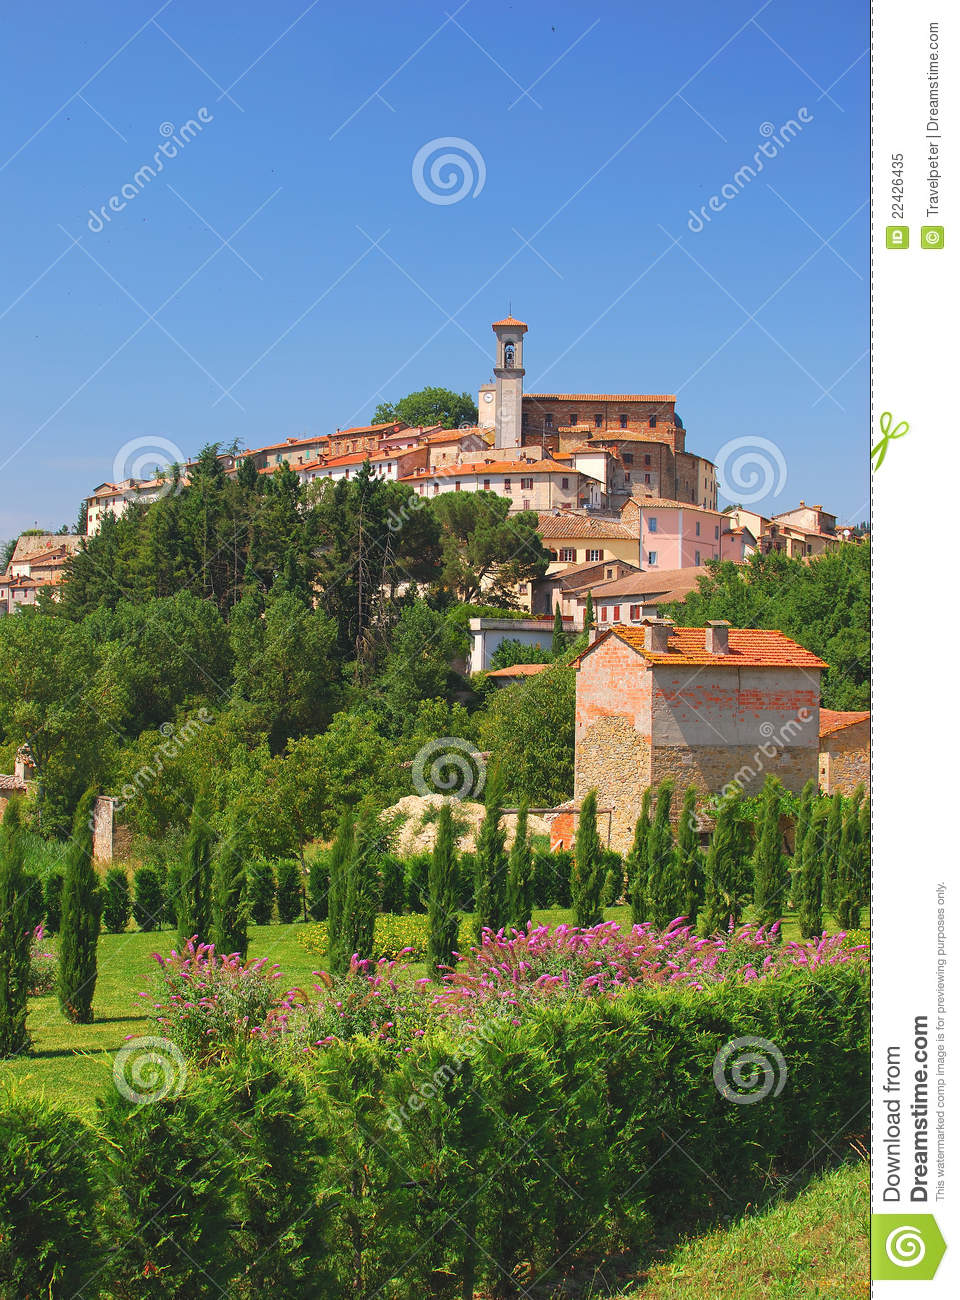 Village pittoresque en Ombrie, Italie